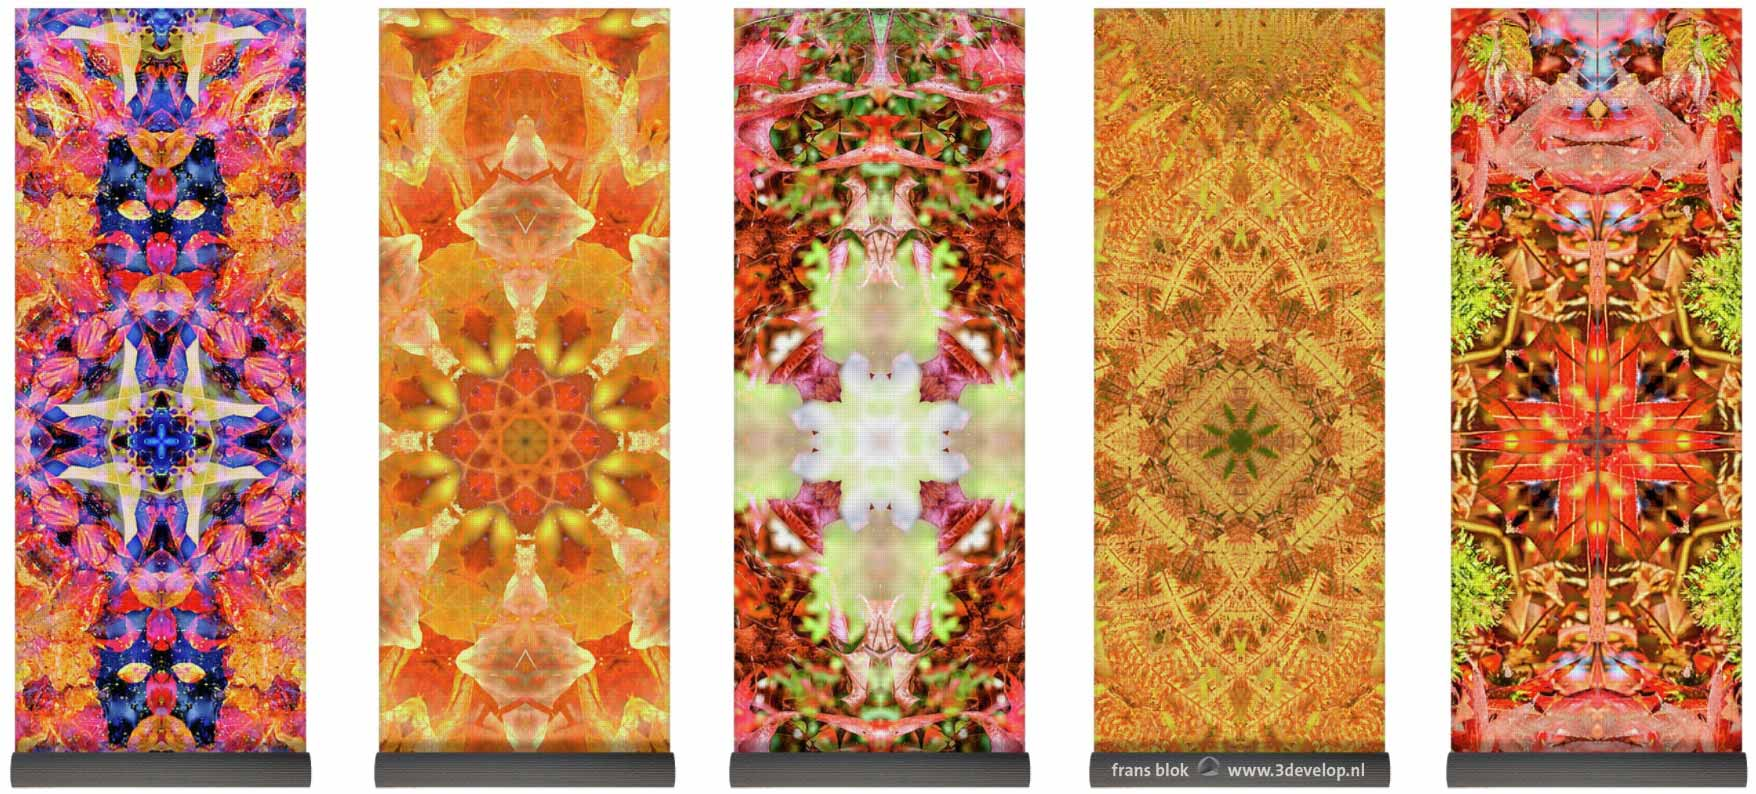 Five yoga mats with colorful harmonious symmetric kaleidoscopic patterns printed on them